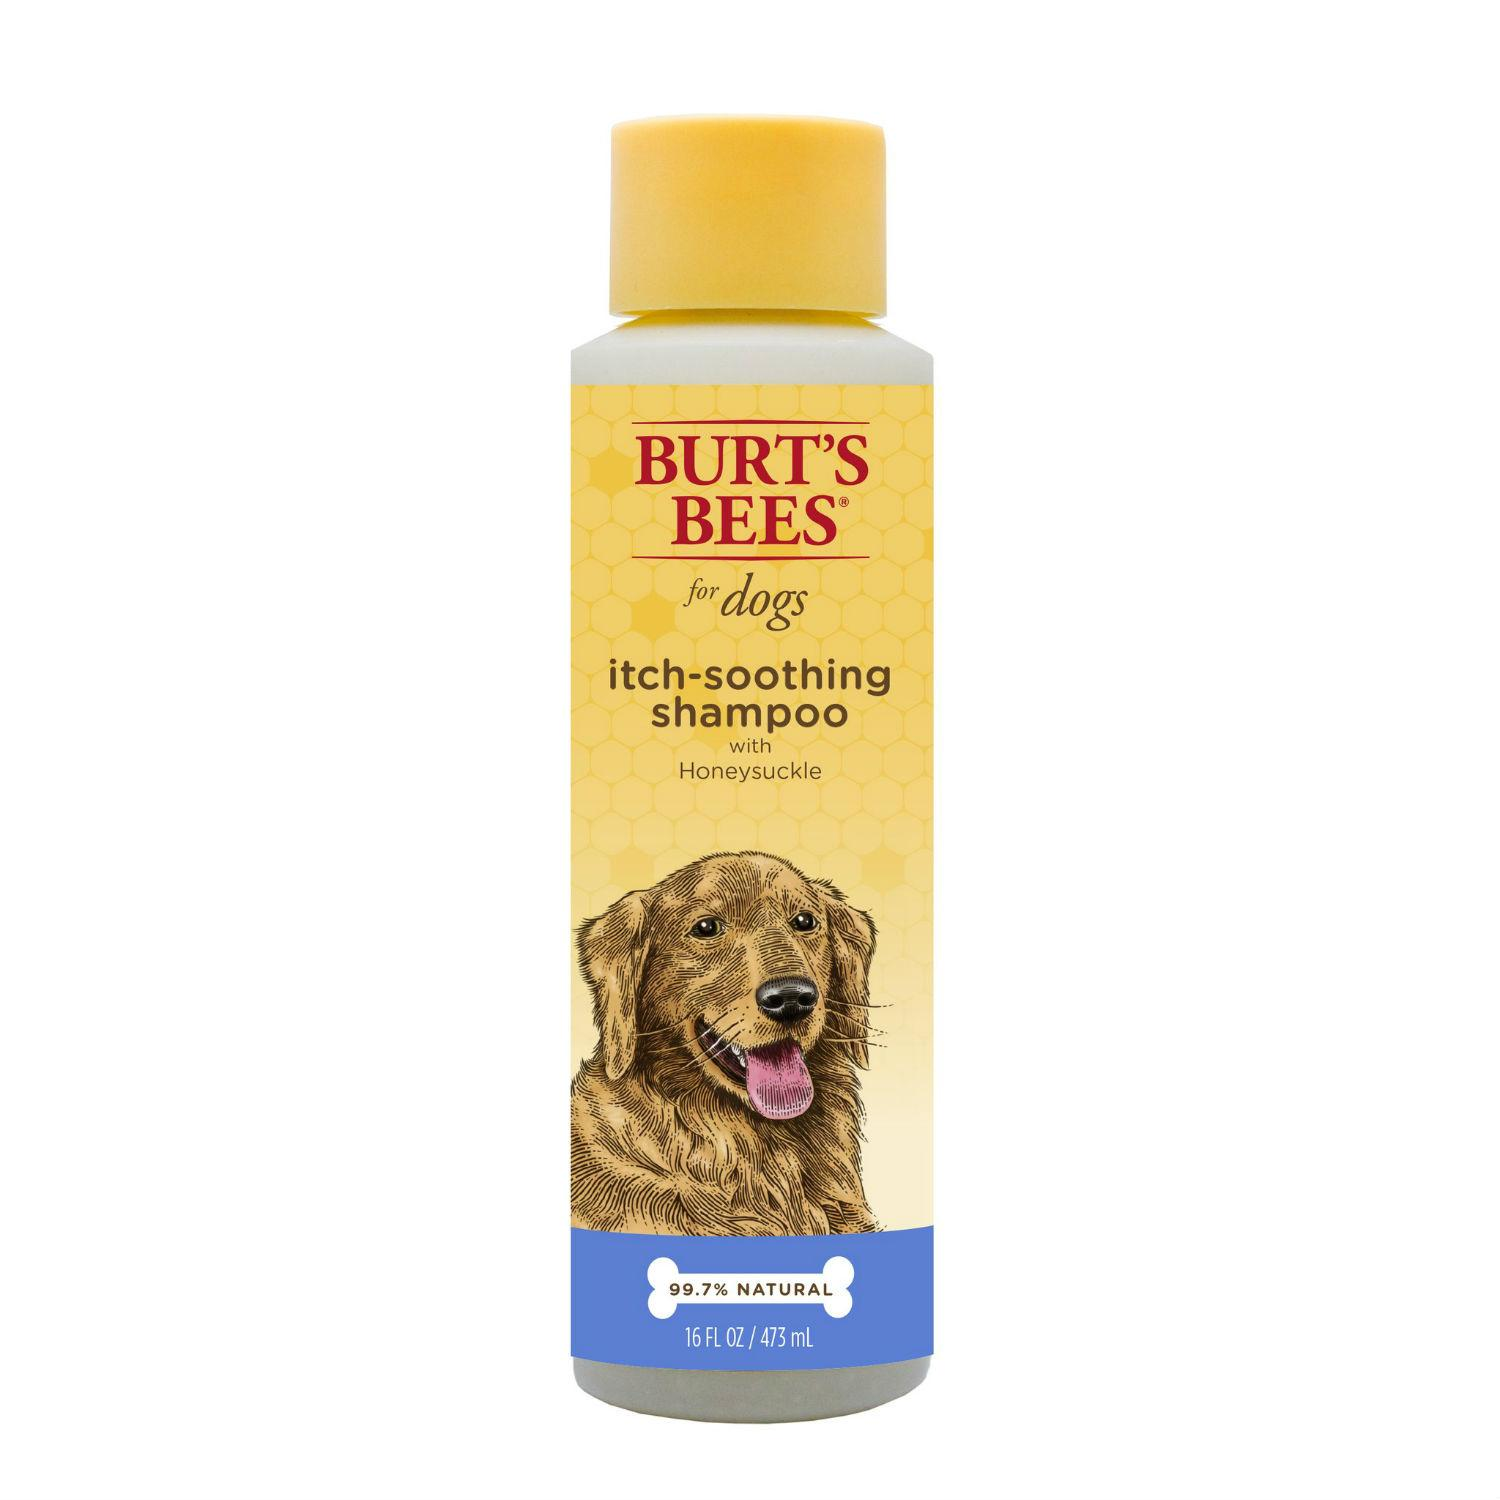 Burt's Bees Natural Itch Soothing Dog Shampoo - Honeysuckle